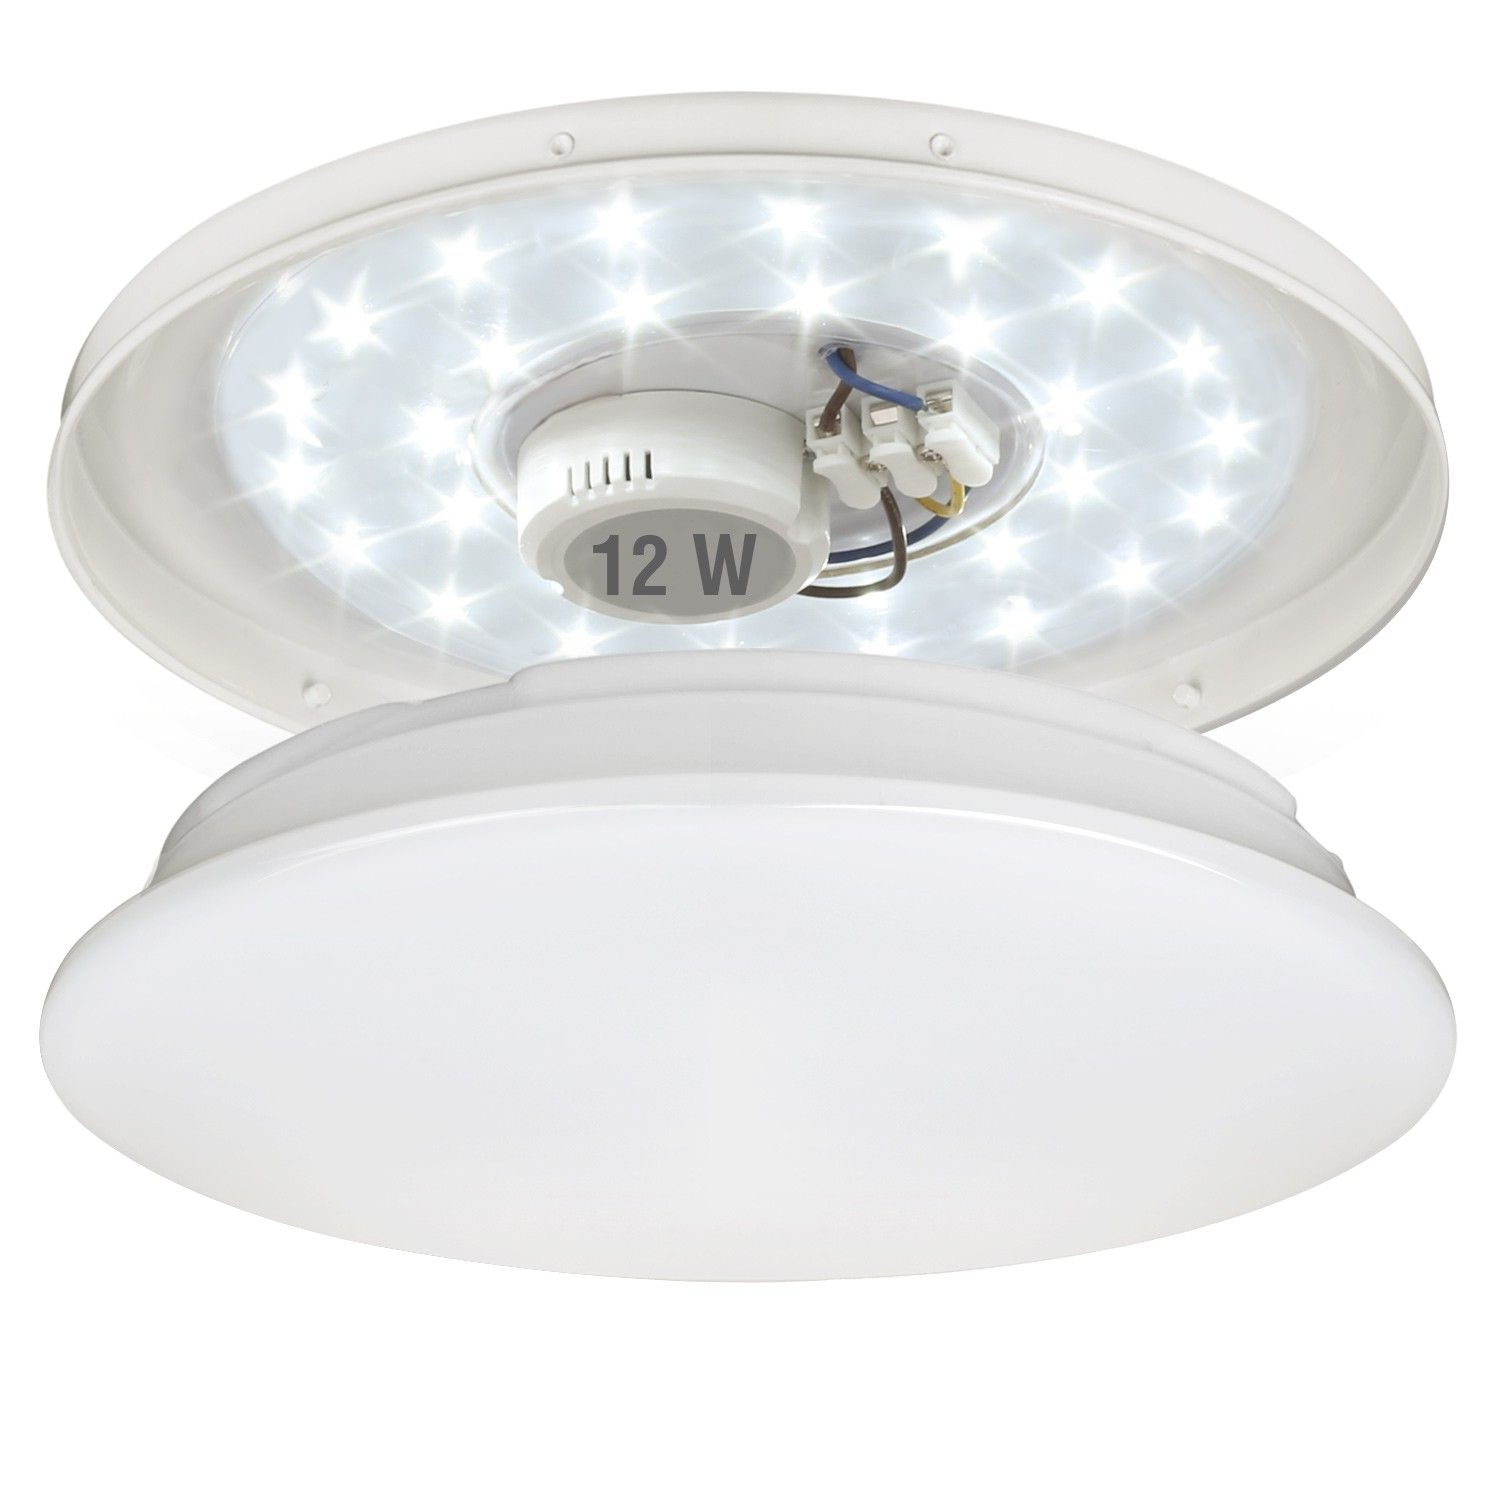 12W LED Ceiling Lights, 22W Fluorescent Bulb Equiv, Daylight White, 950lm, Lighting for Living Room, Bedroom, Dining Room, Flush Mount Ceiling Lights